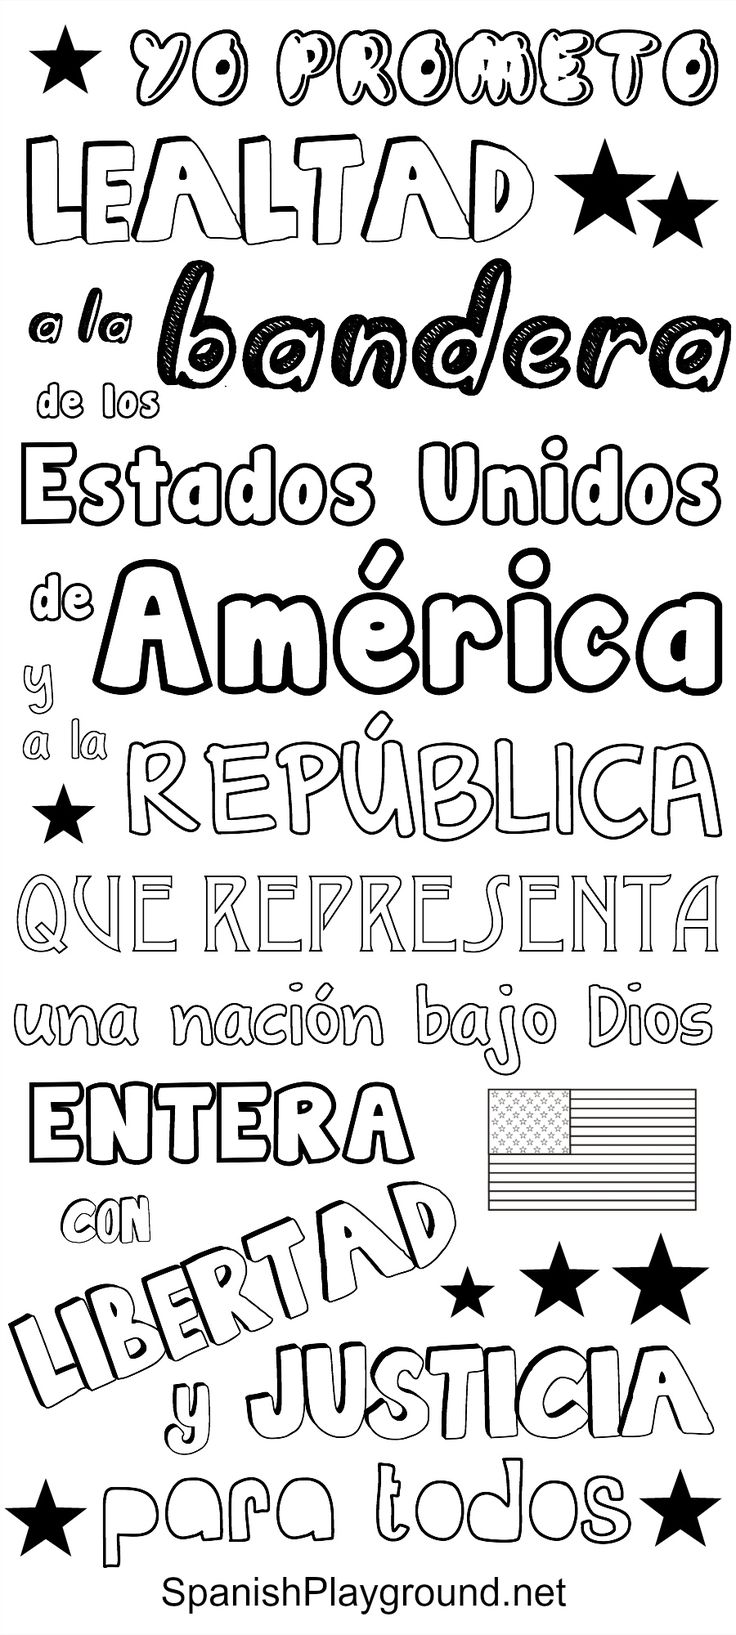 The Pledge of Allegiance in Spanish: Pledge of Allegiance printables, great for speaking Spanish with kids on Independence Day! One version in color and another in black and white for kids to print and color. #4thofJulyactivities for kids #pledgeofallegianceSpanish #pledgeofallegiance for kids #Spanishcoloring sheets http://spanishplayground.net/pledge-of-allegiance-in-spanish/